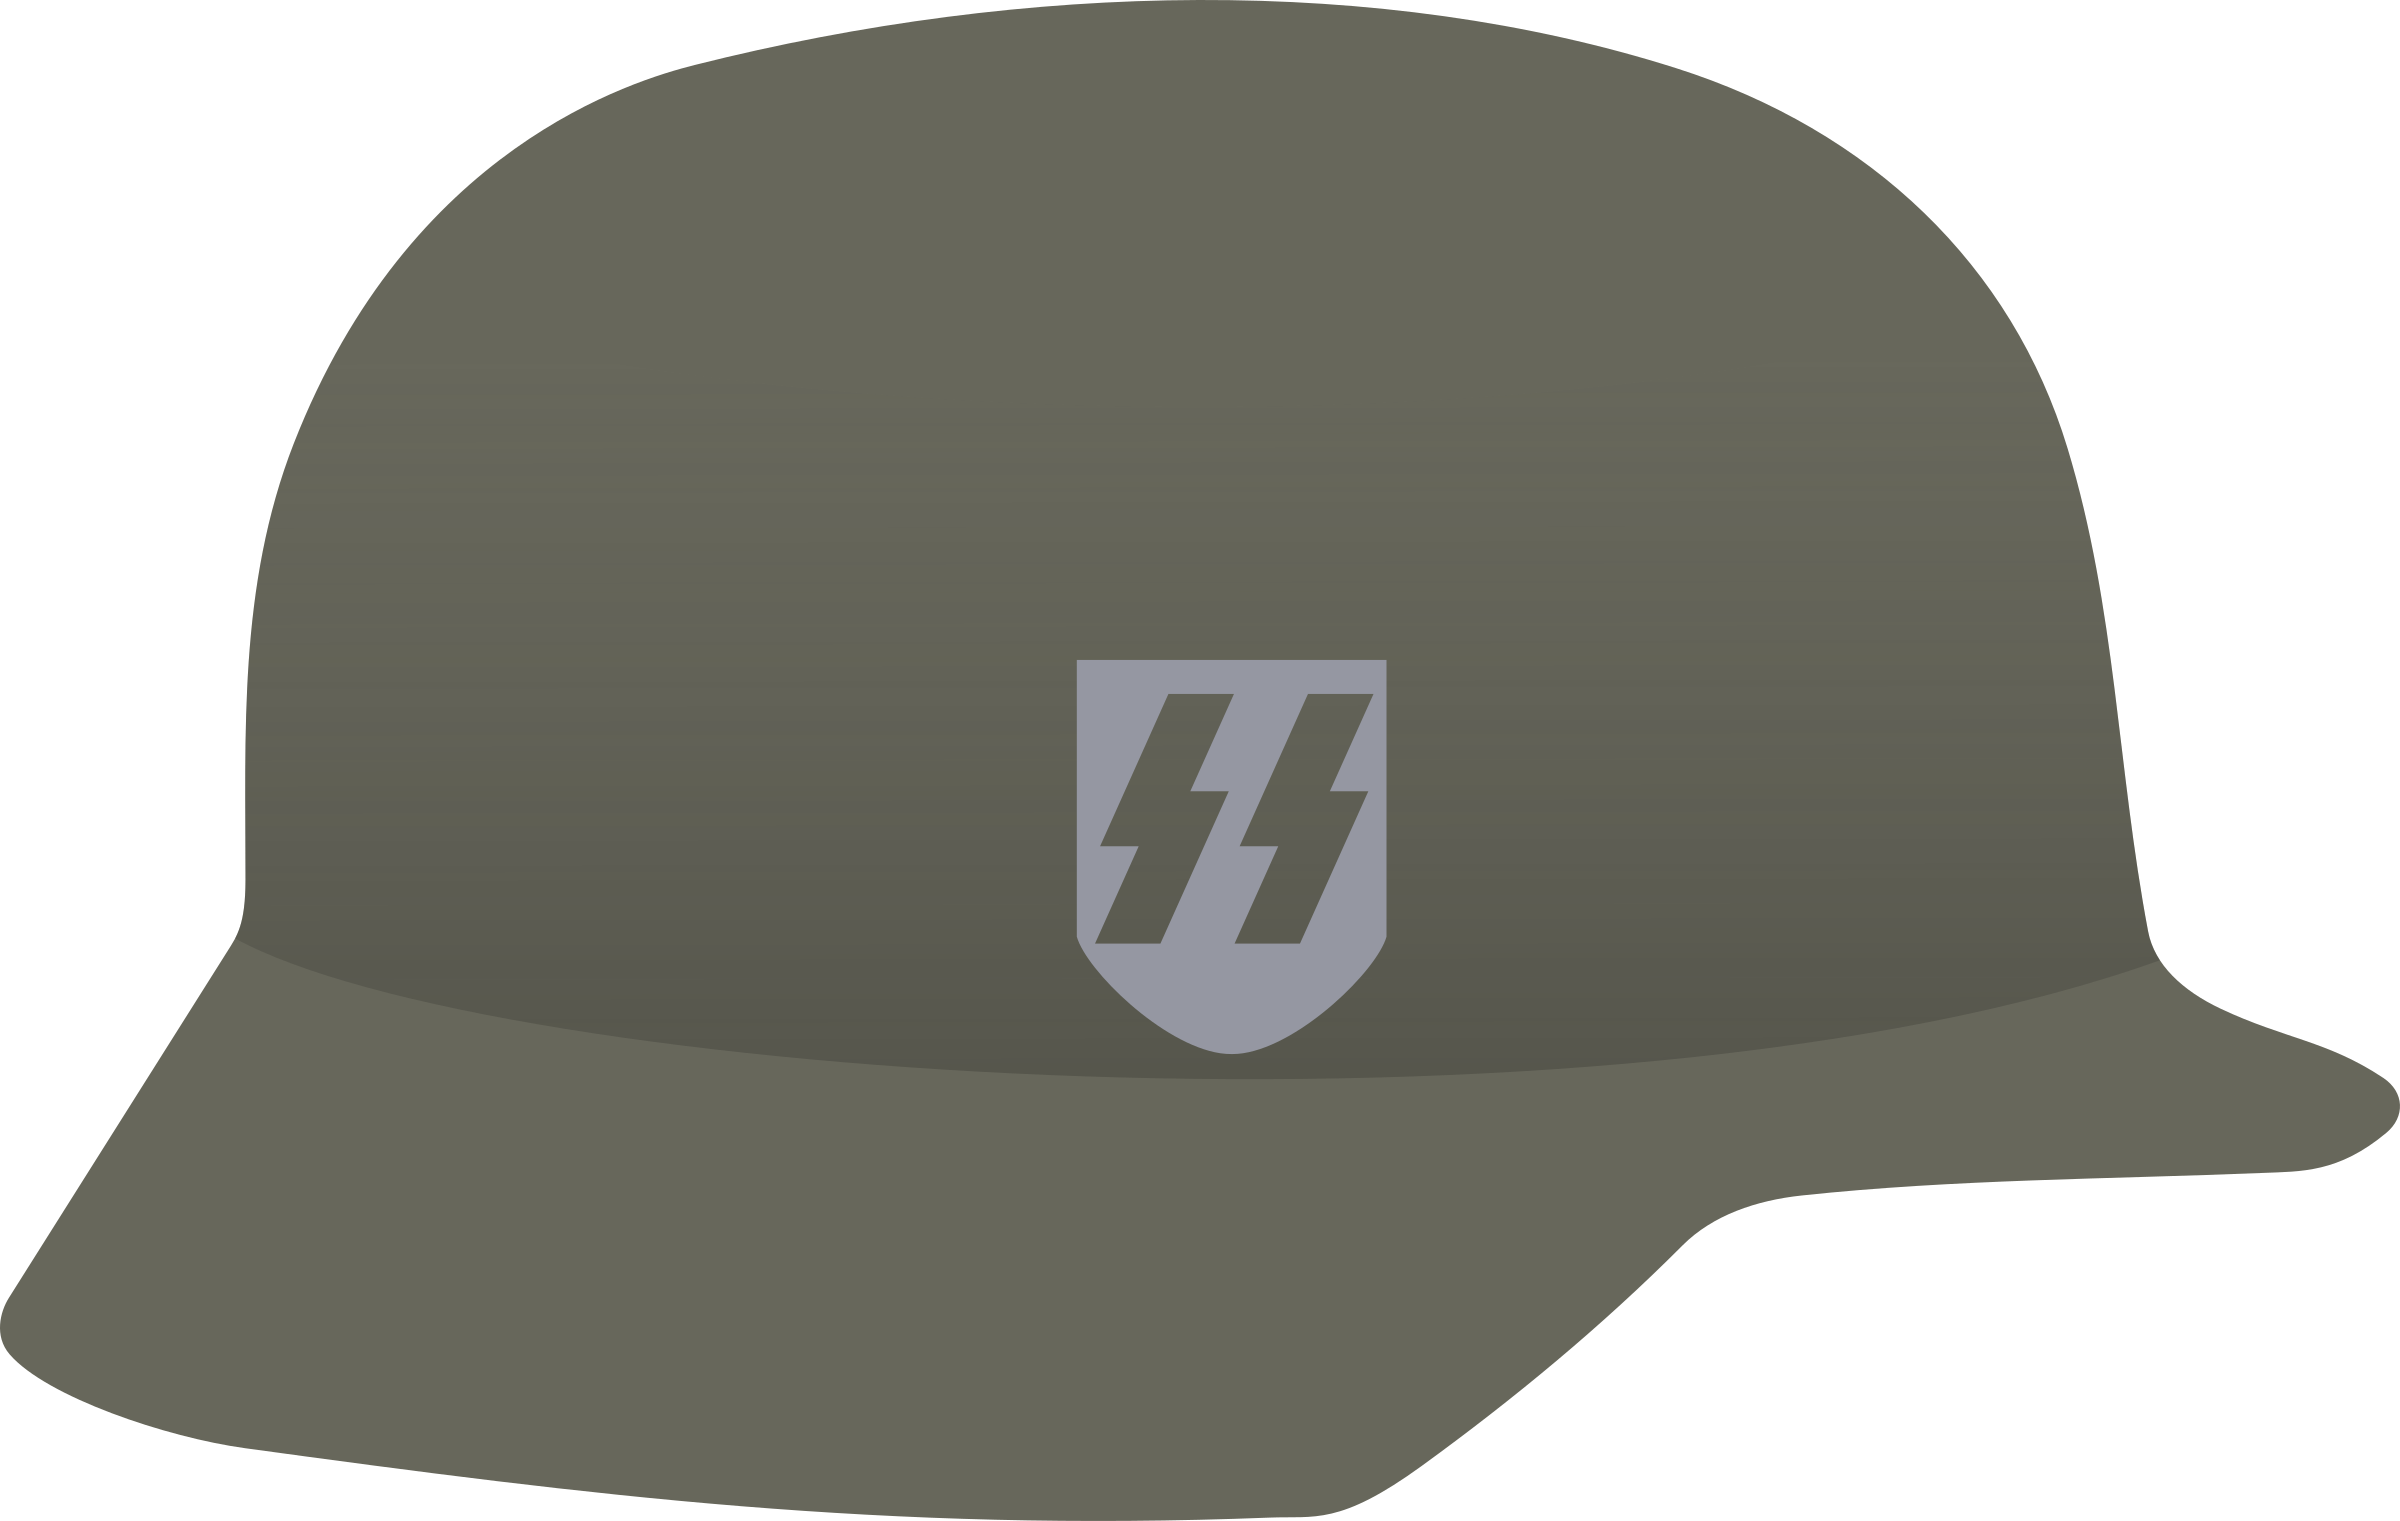 Nazi hat png. Helmet icons free and